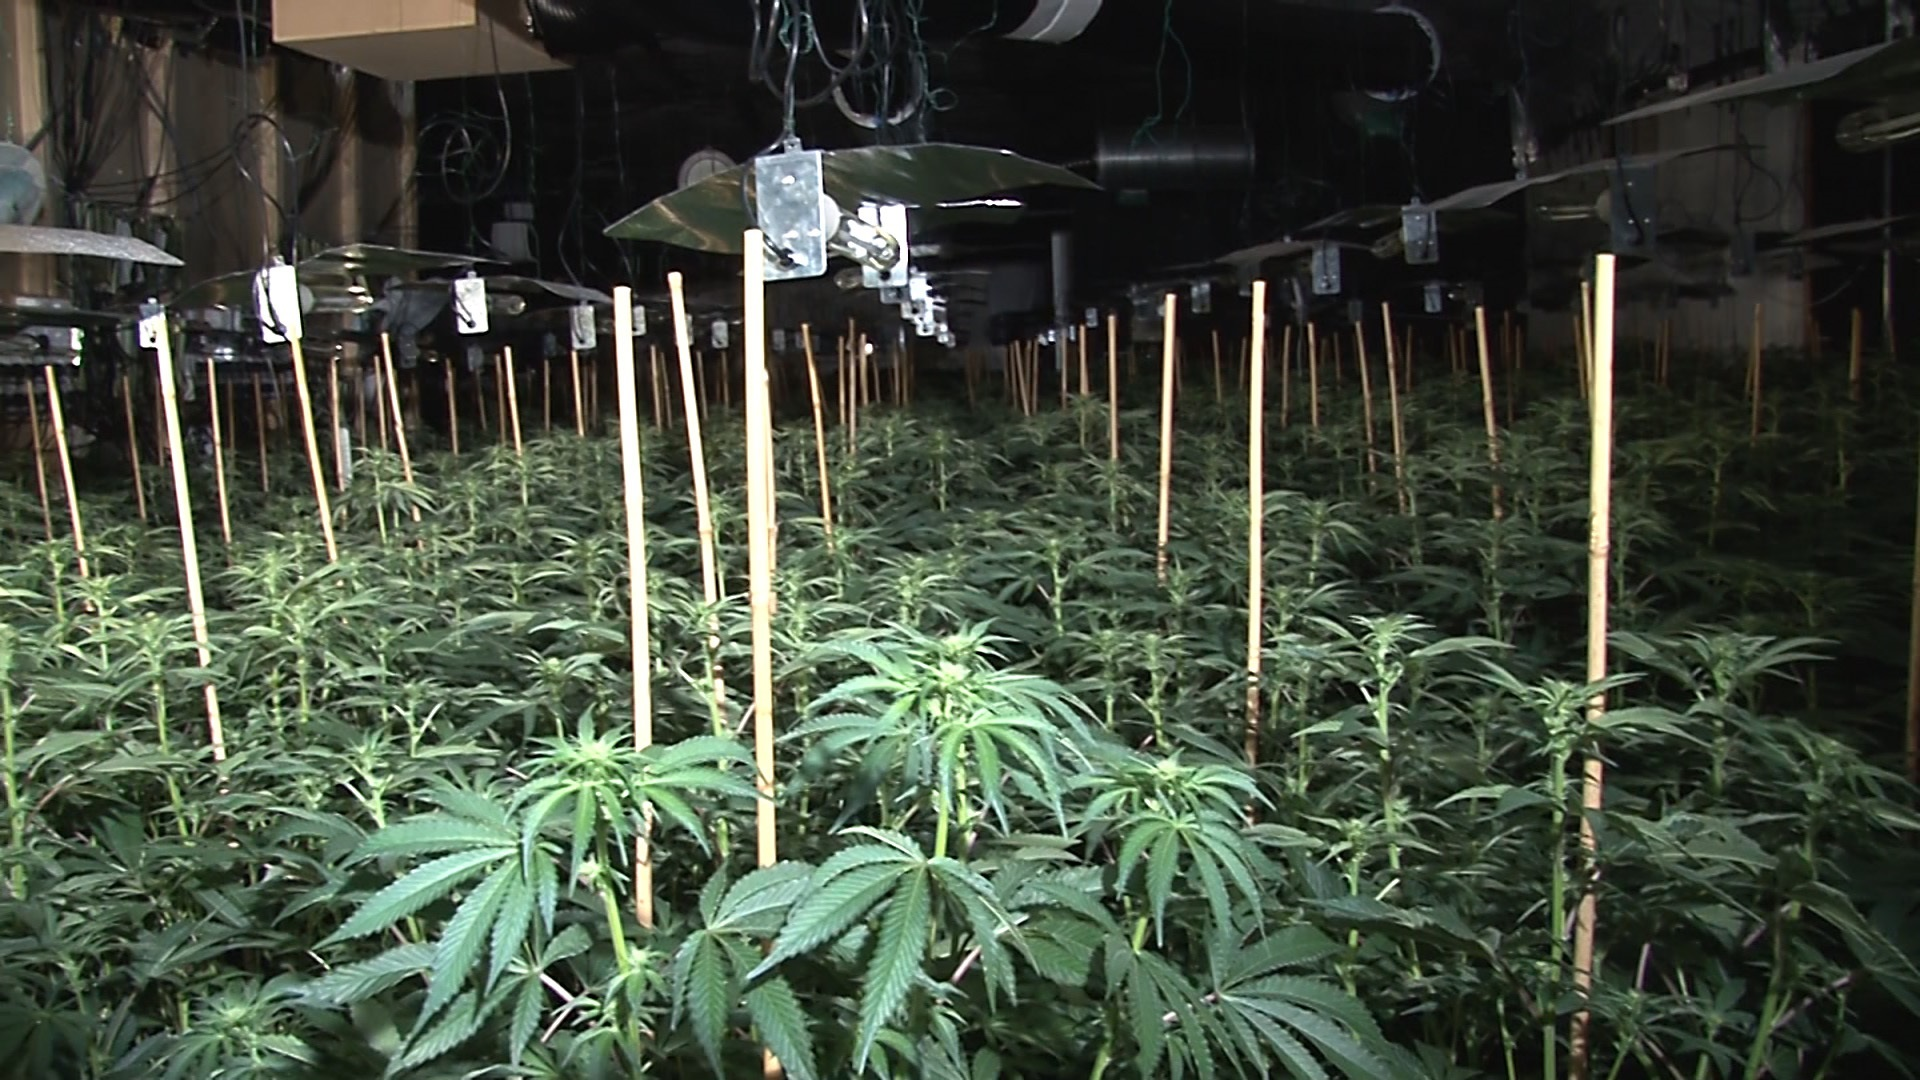 Cannabis plants found at the site